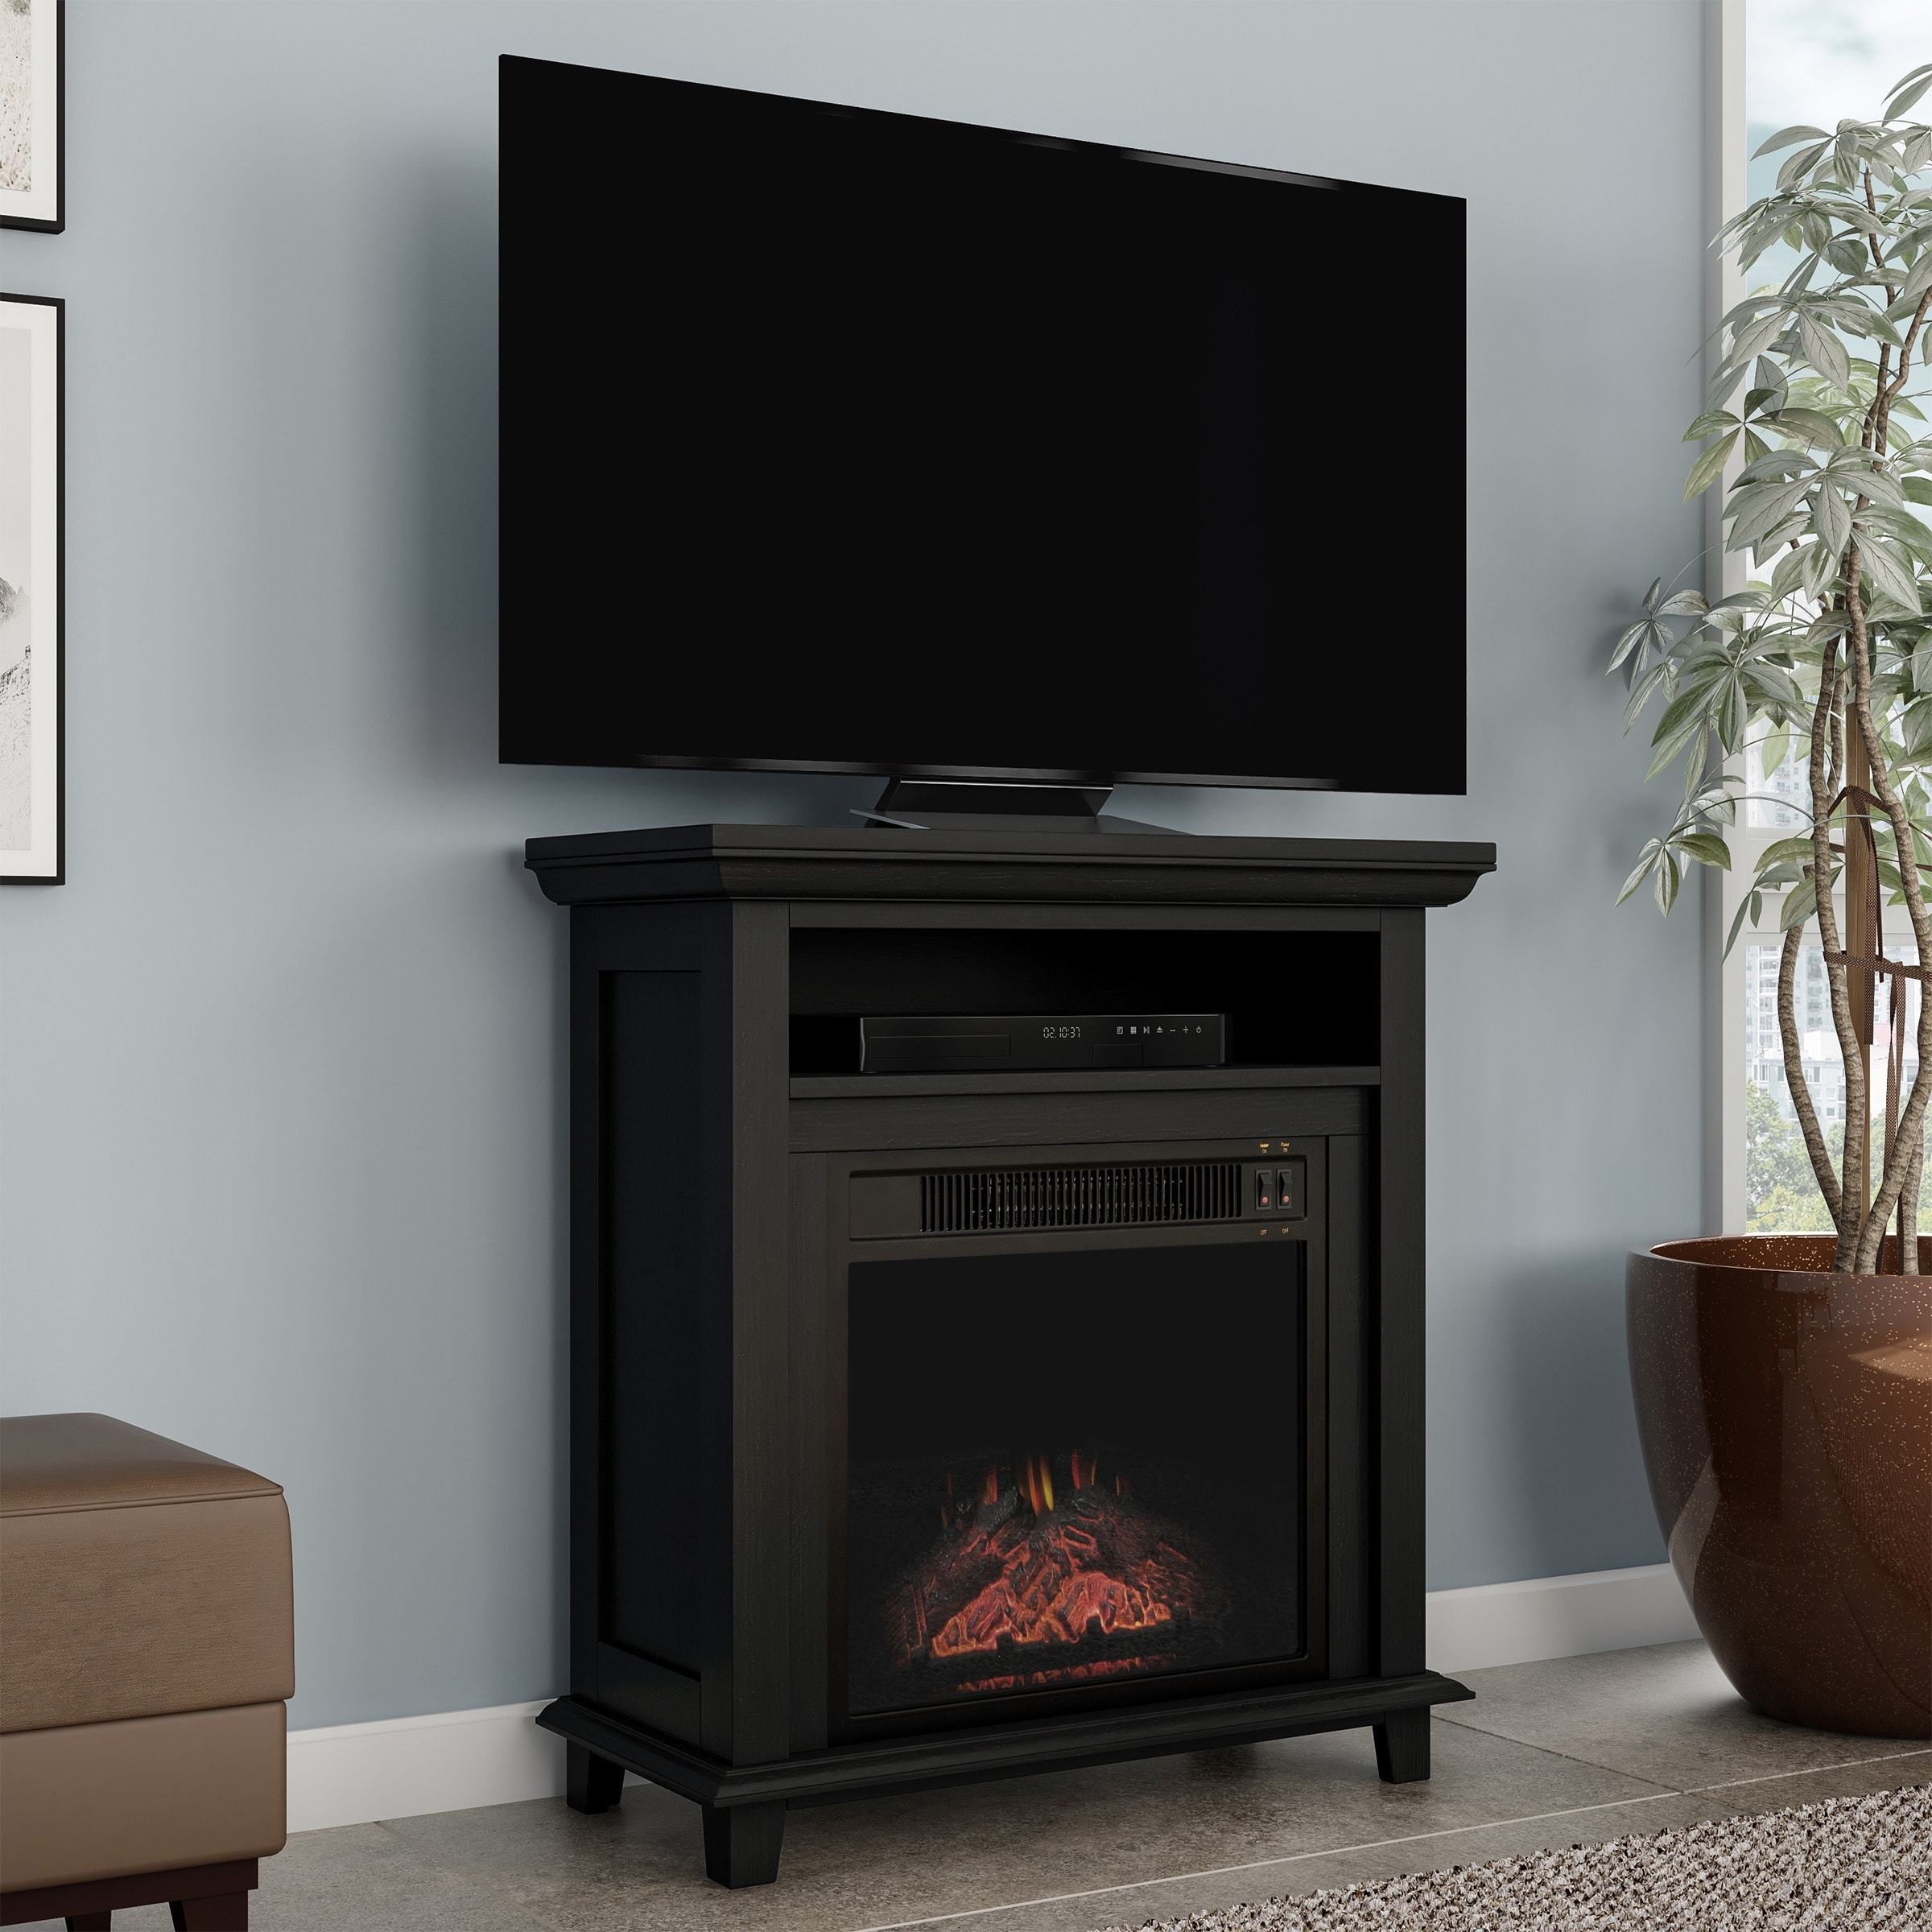 Copper Grove Siavonga Electric Fireplace Tv Stand With Faux Logs And Led Flames 27 X 12 4 X 29 27 X 12 4 X 29 On Sale Overstock 28896206